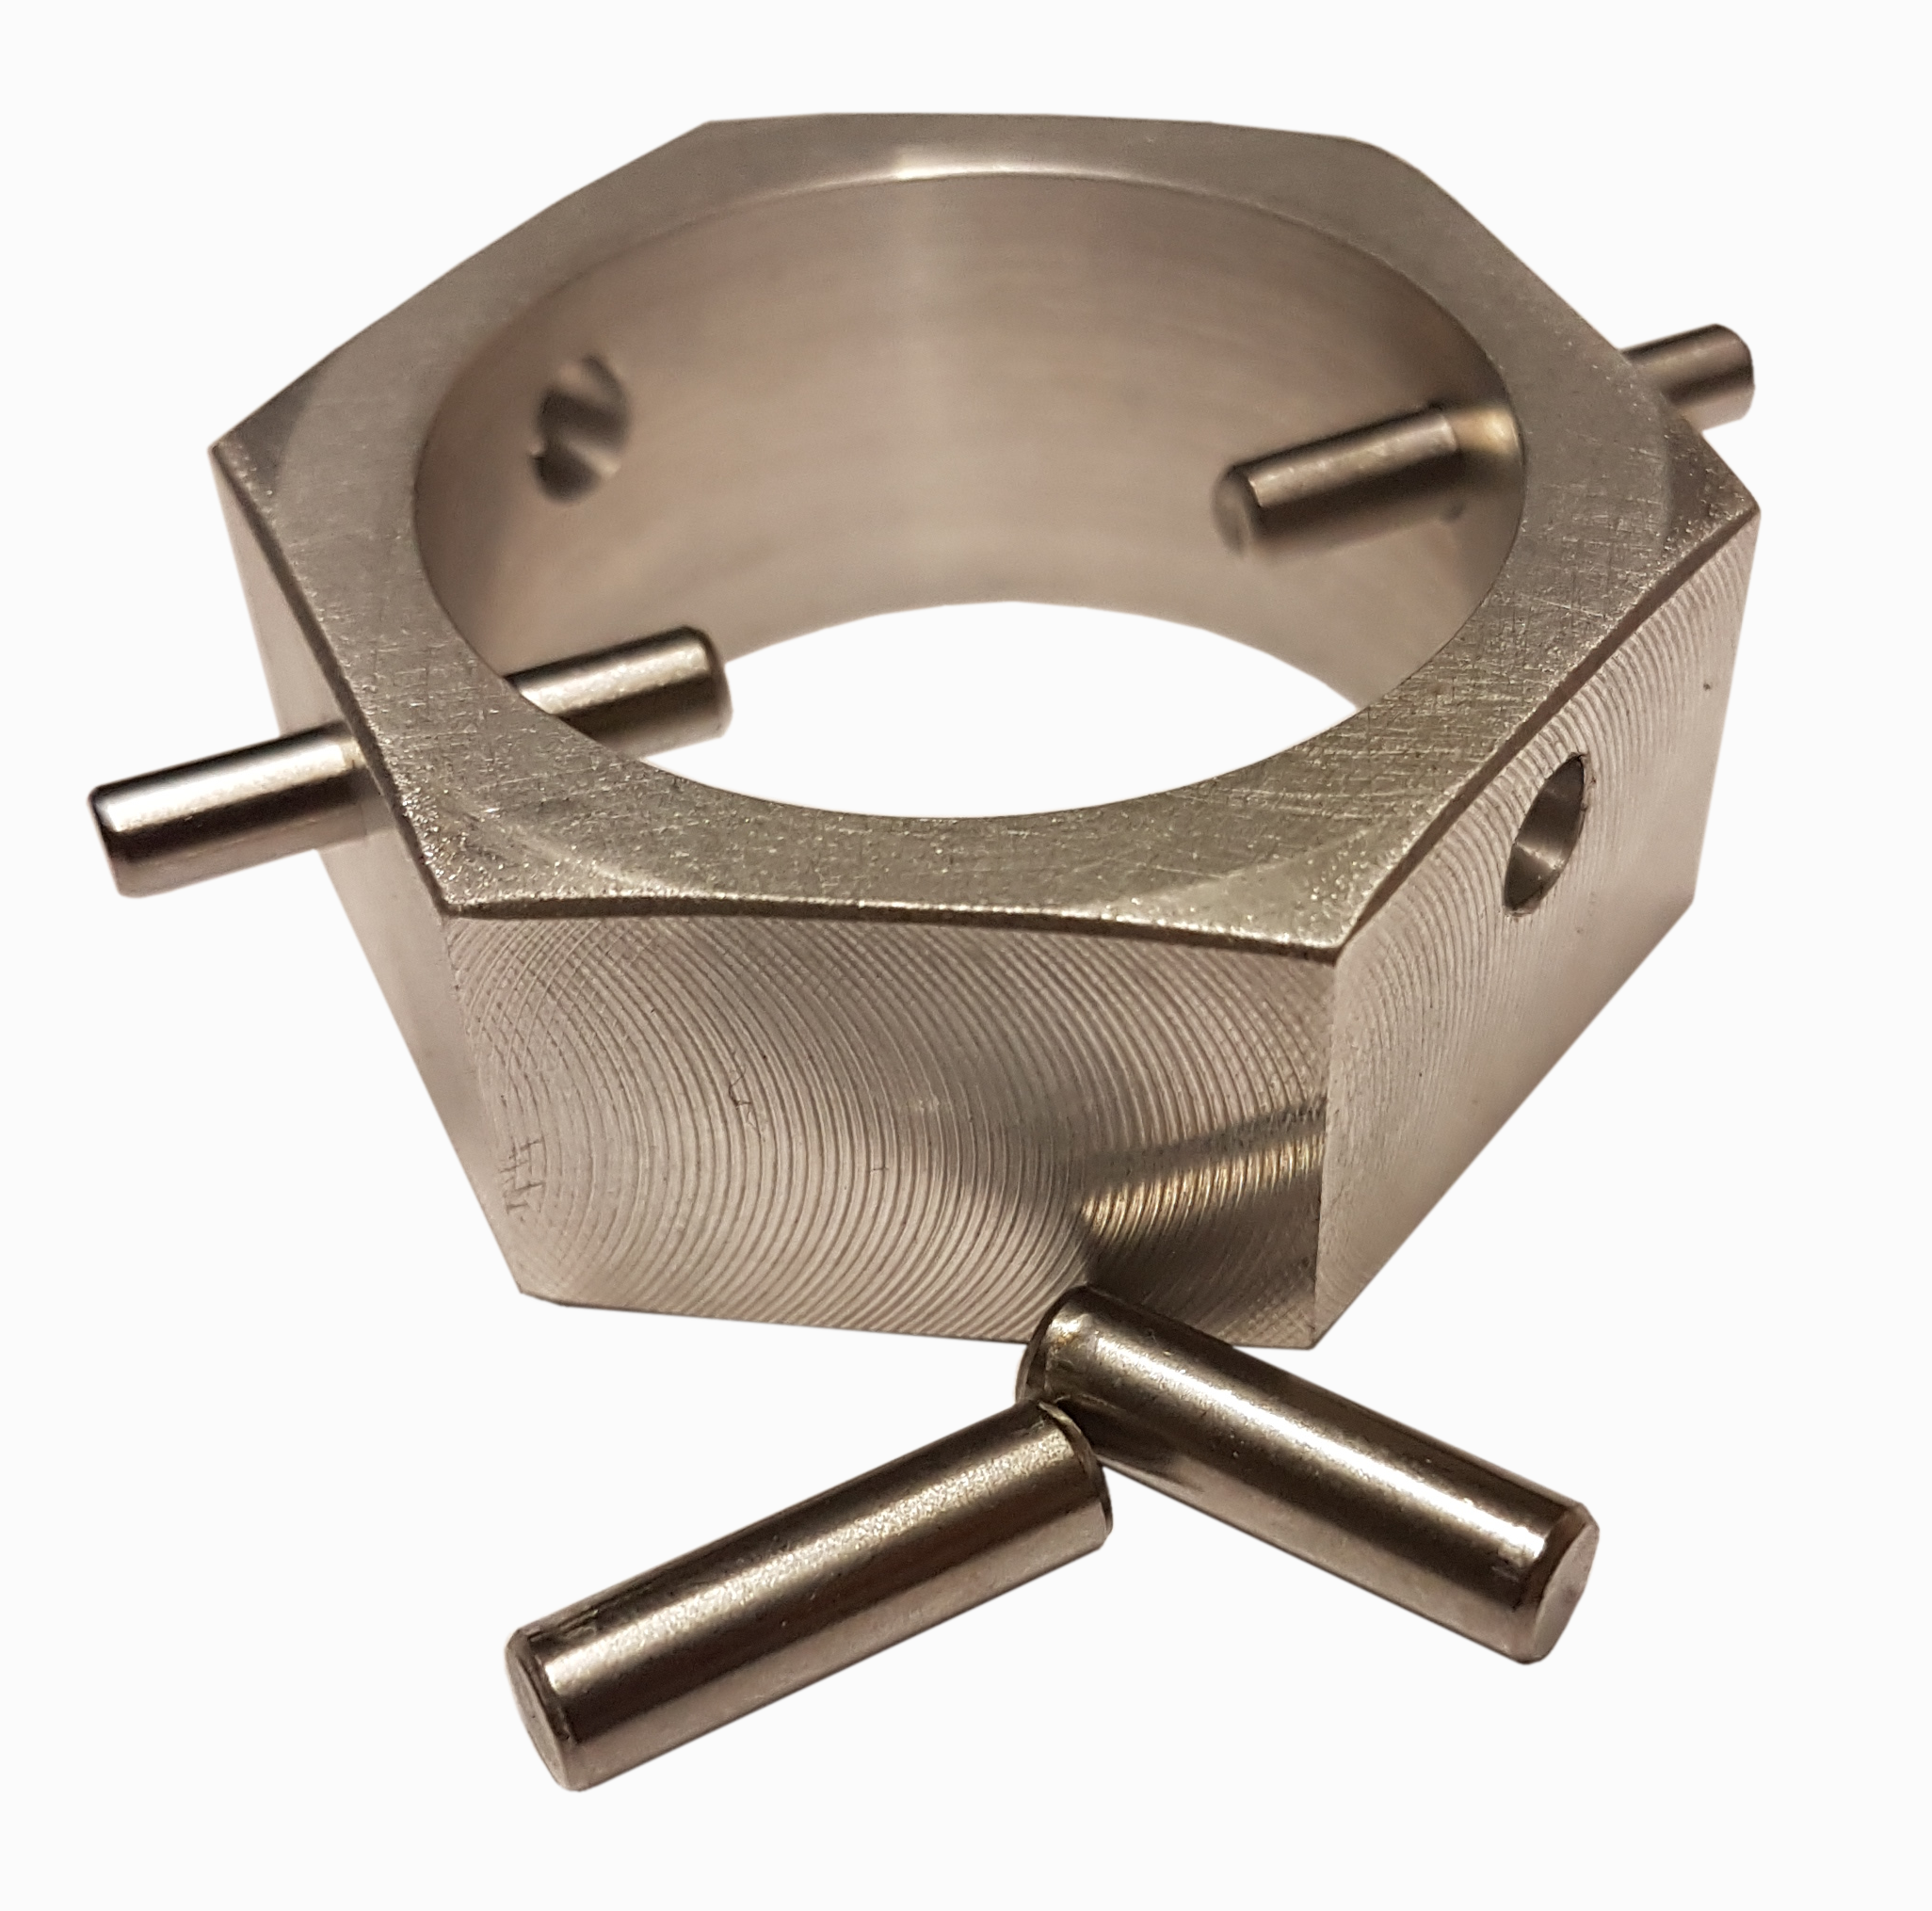 S200 (CZ) firing/filling valve removal tool - Hex